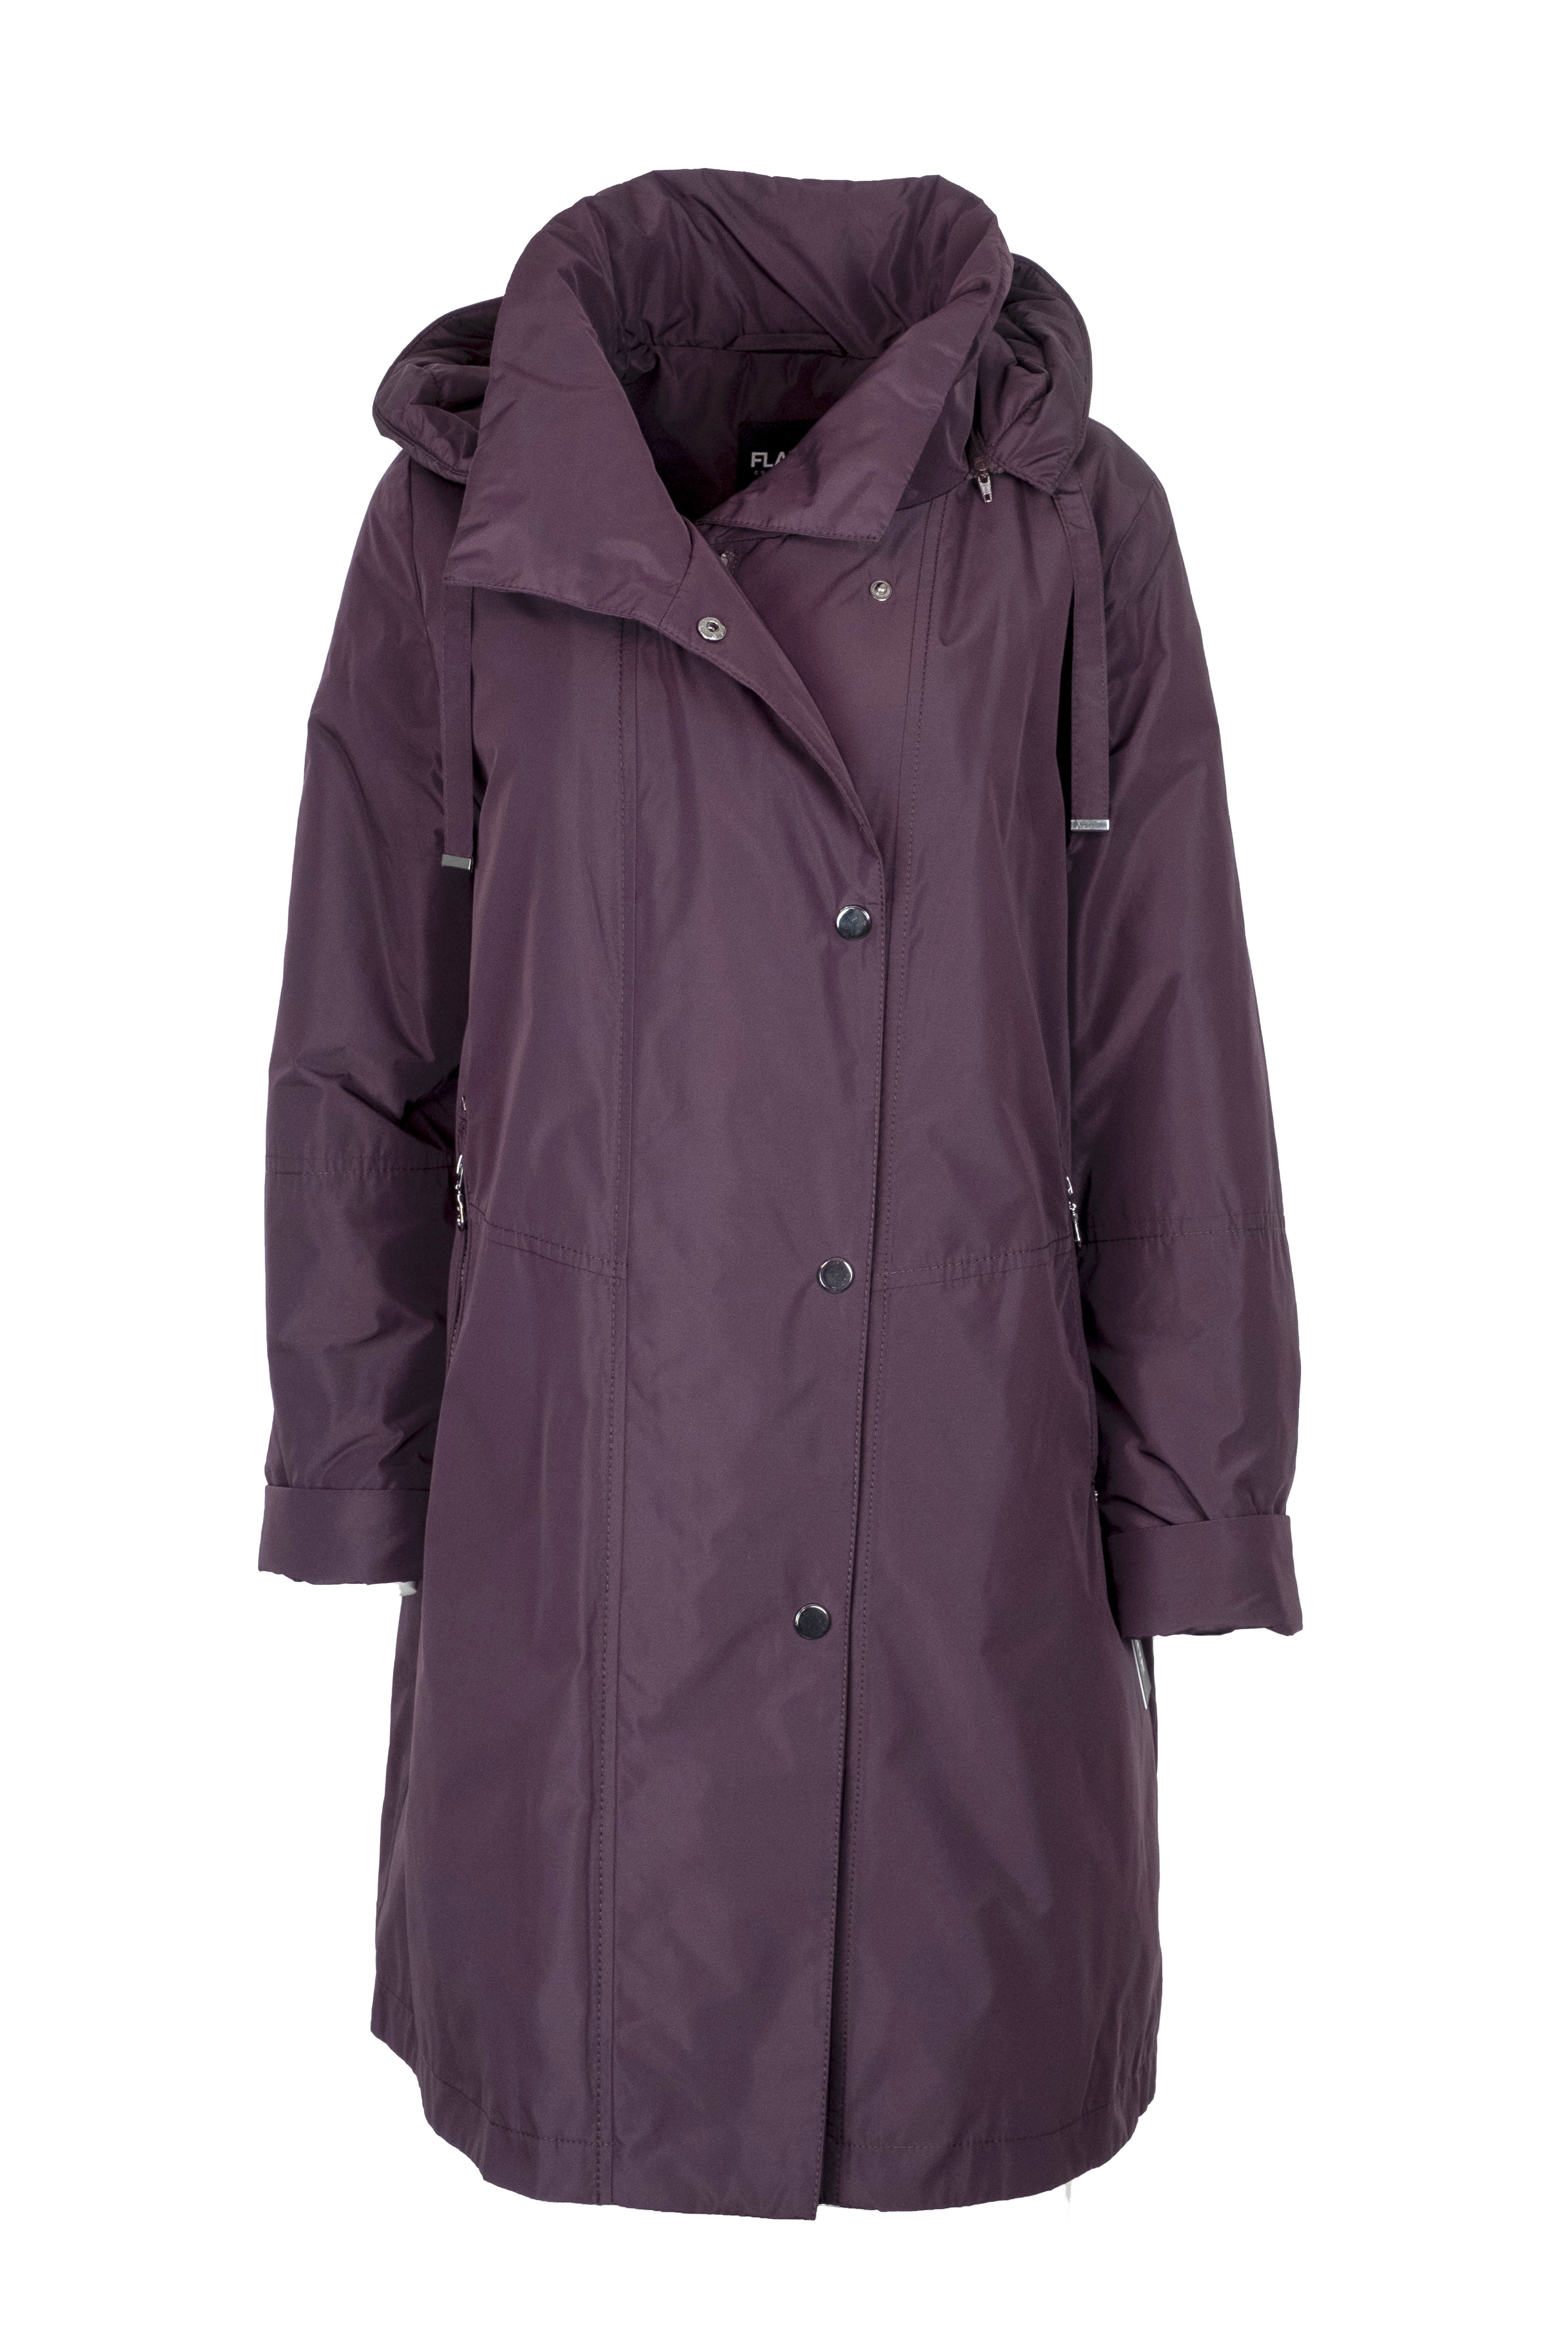 Flare Collection winterjas 3346 aubergine paars